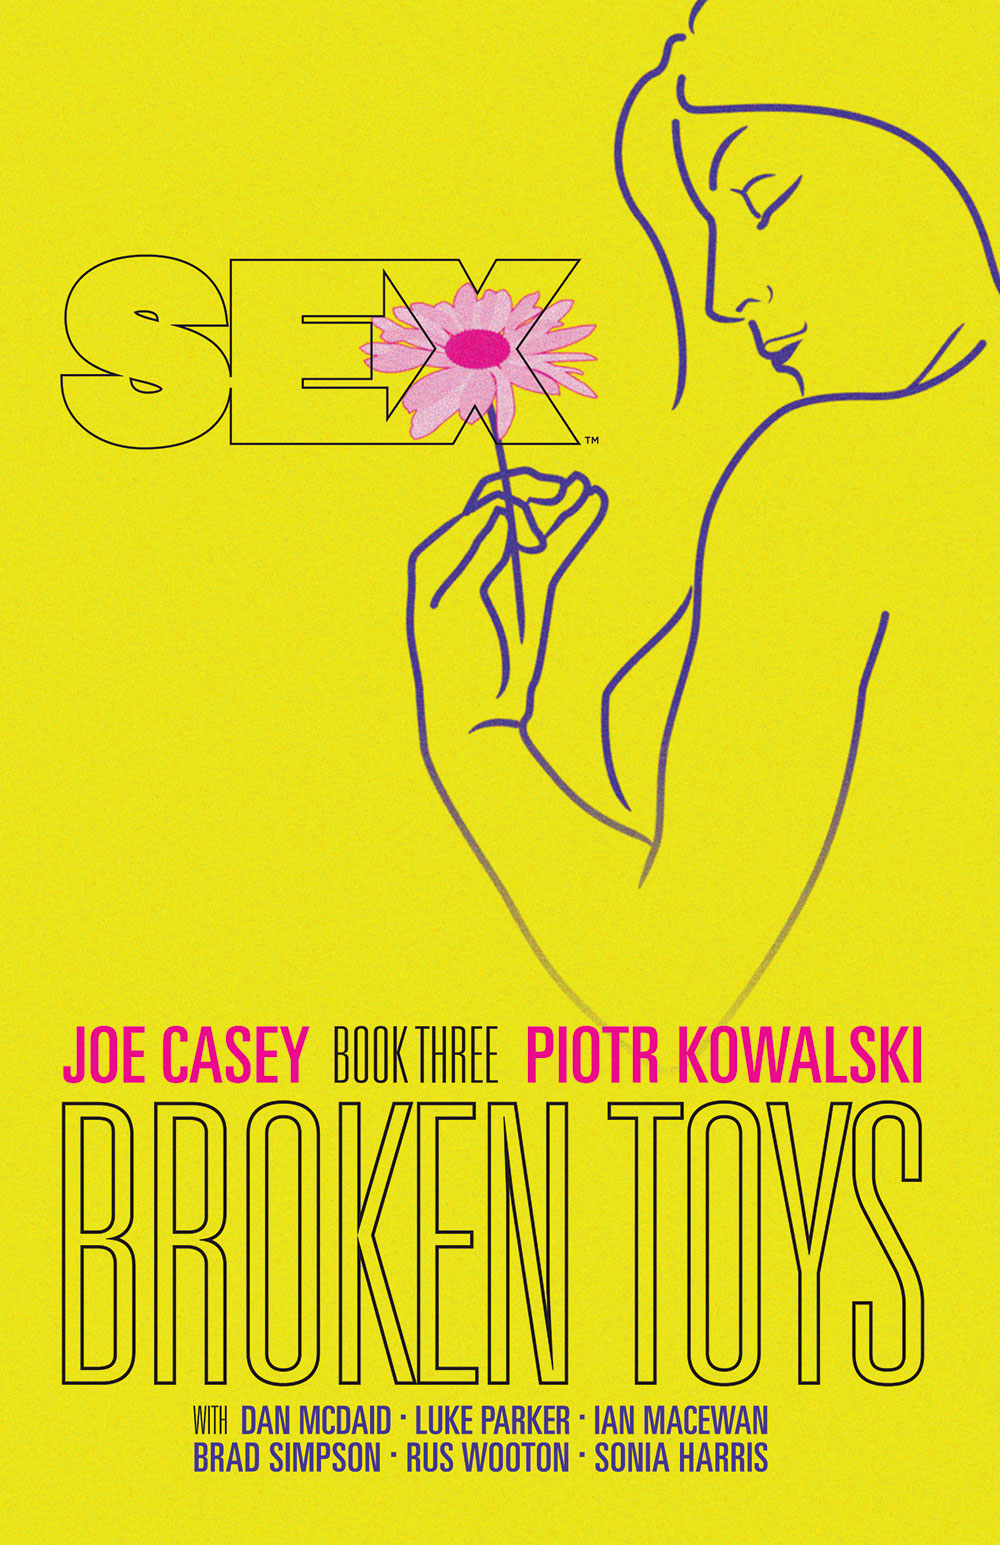 Book & Logo: Sex - Book 3, Broken Toys